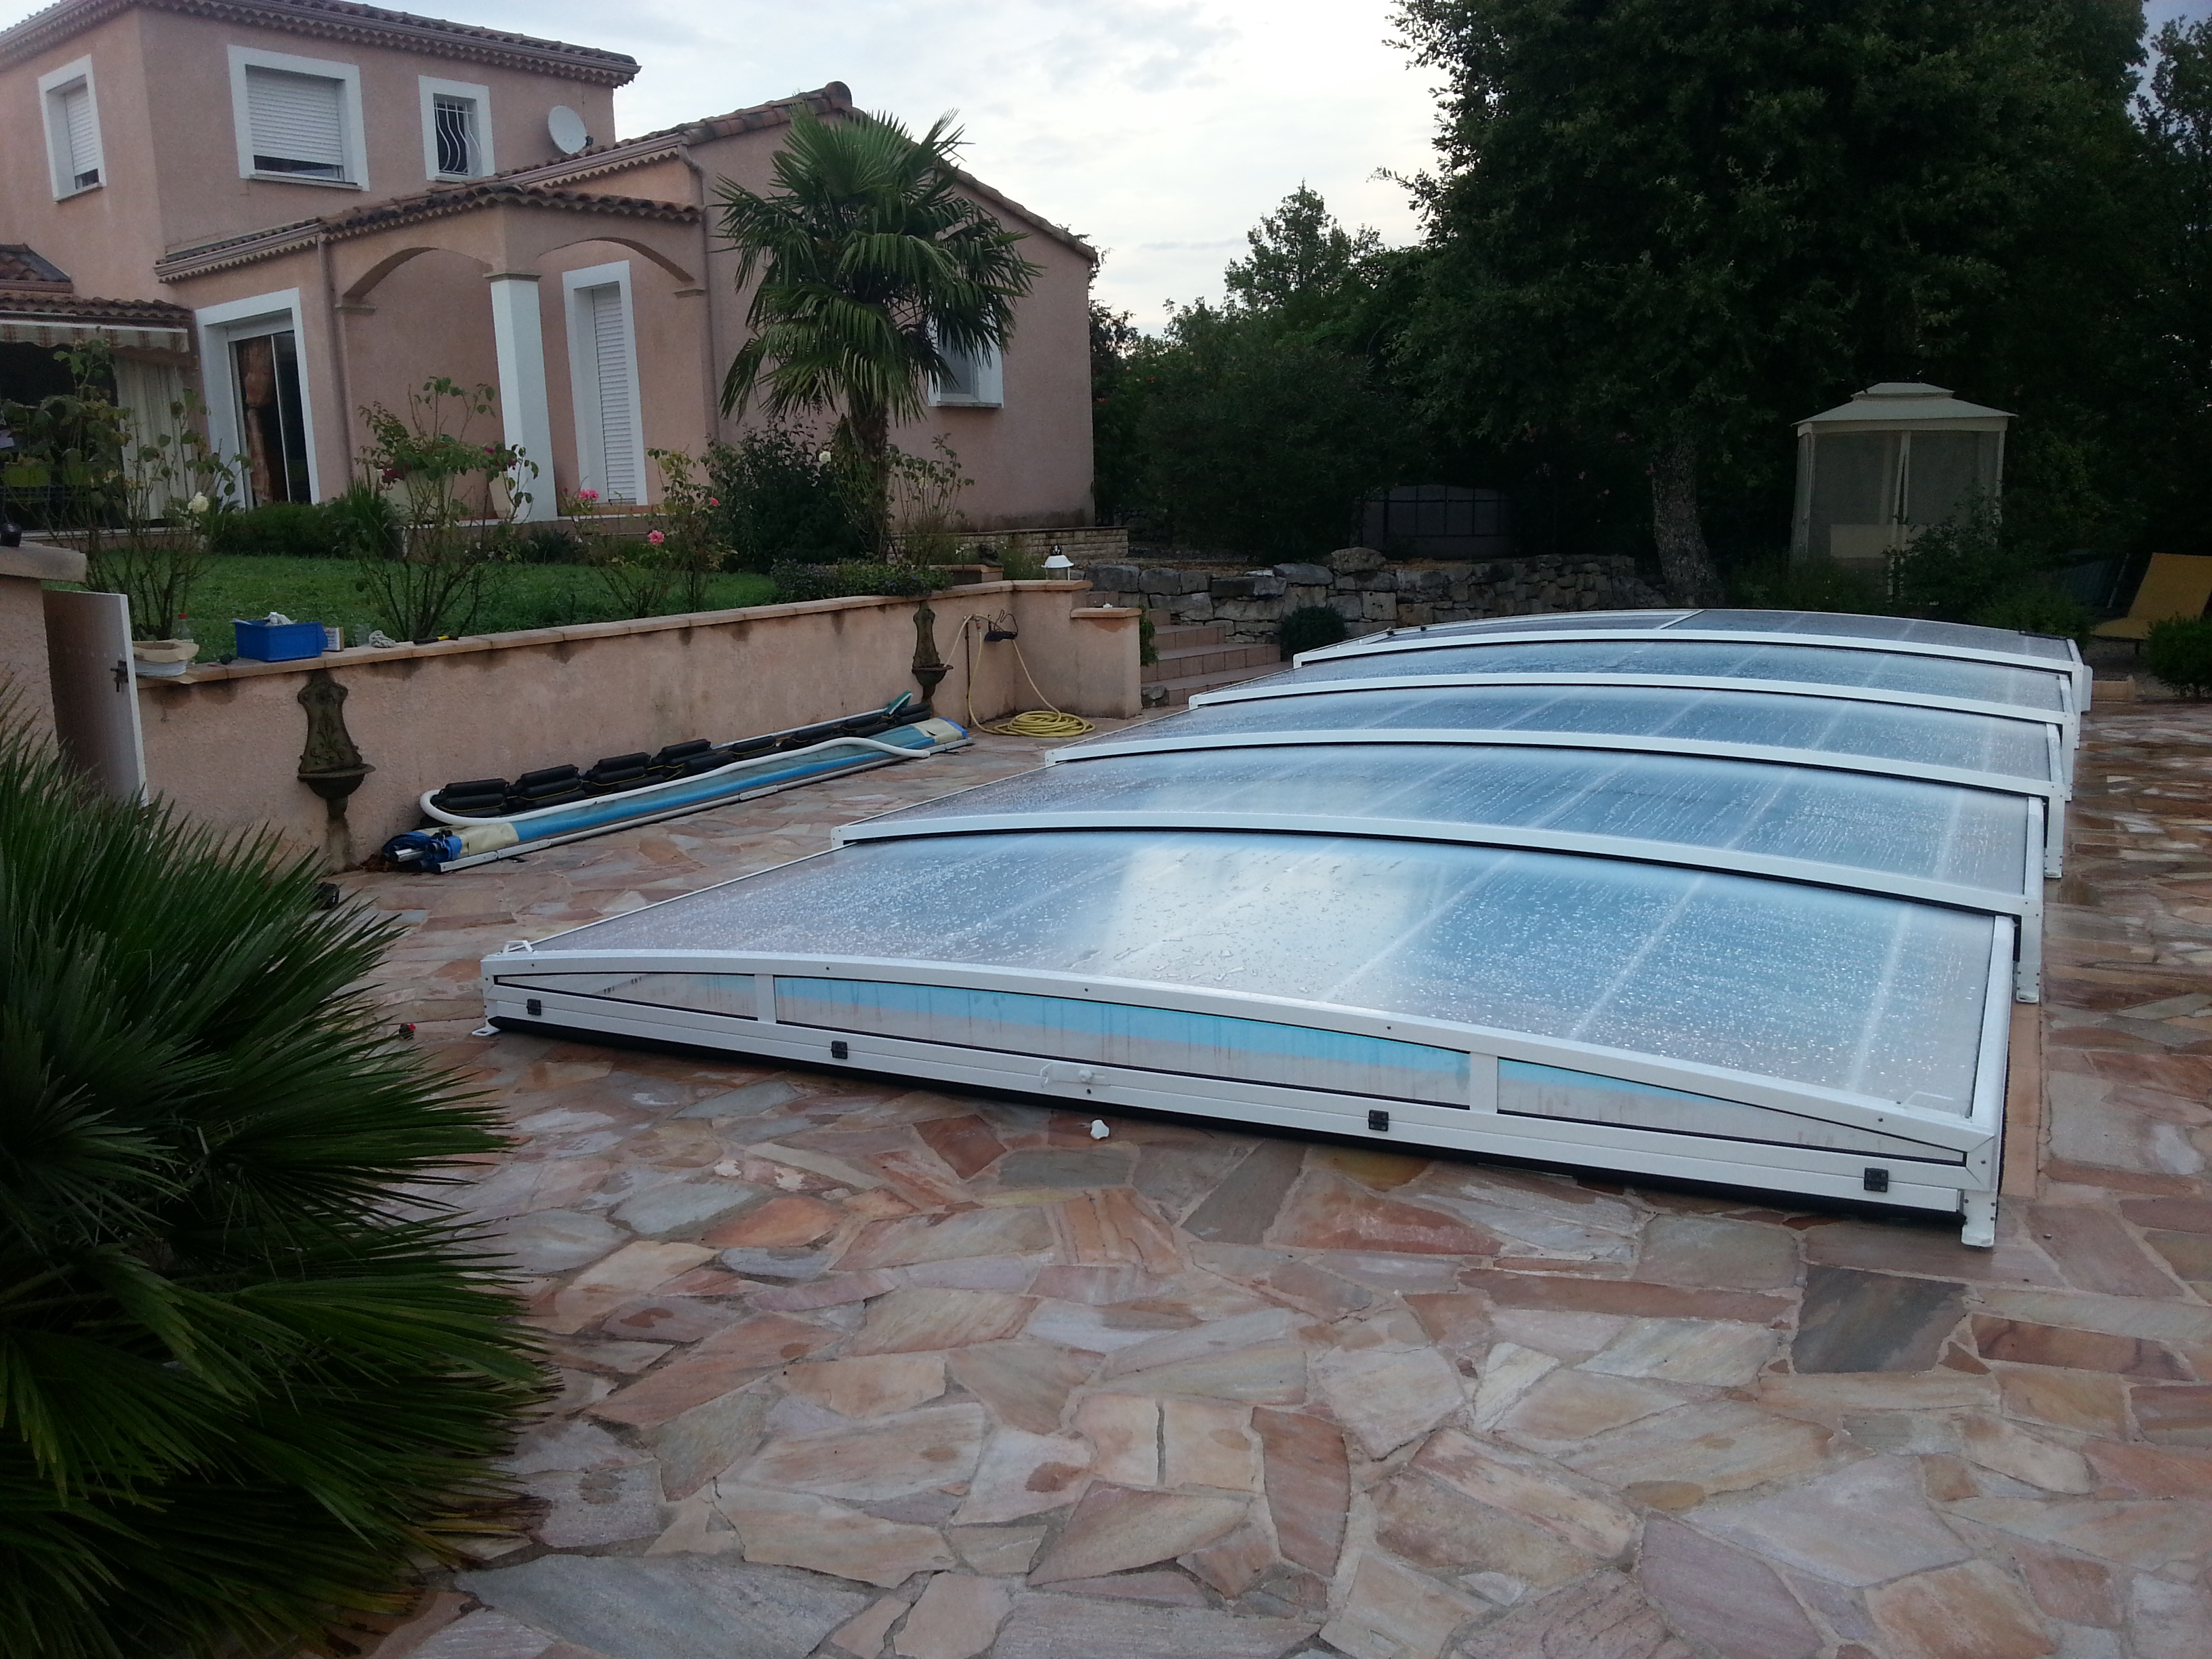 Abri de piscine en kit good abri de piscine en kit with for Abri piscine plat